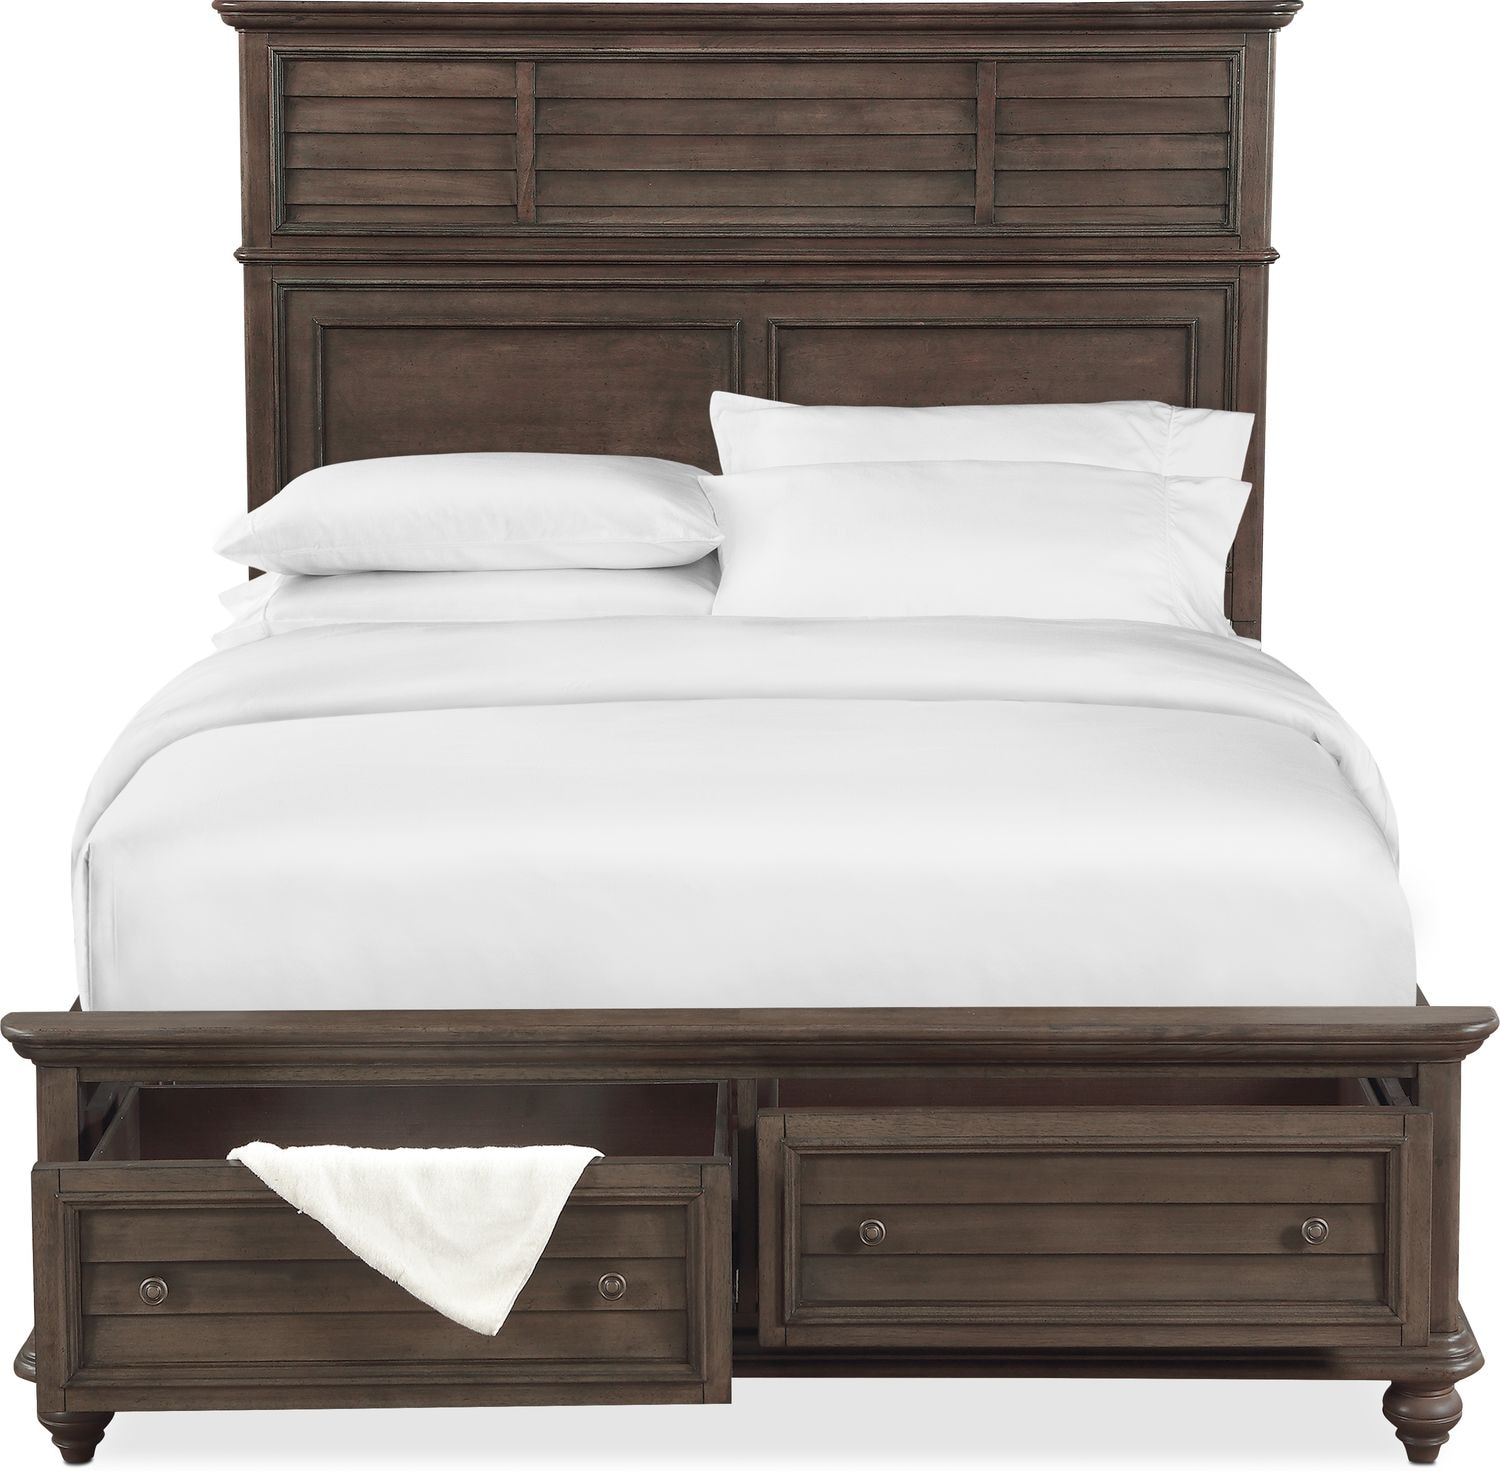 Charleston queen panel bed with 2 underbed drawers gray american signature furniture Queen bedroom sets with underbed storage